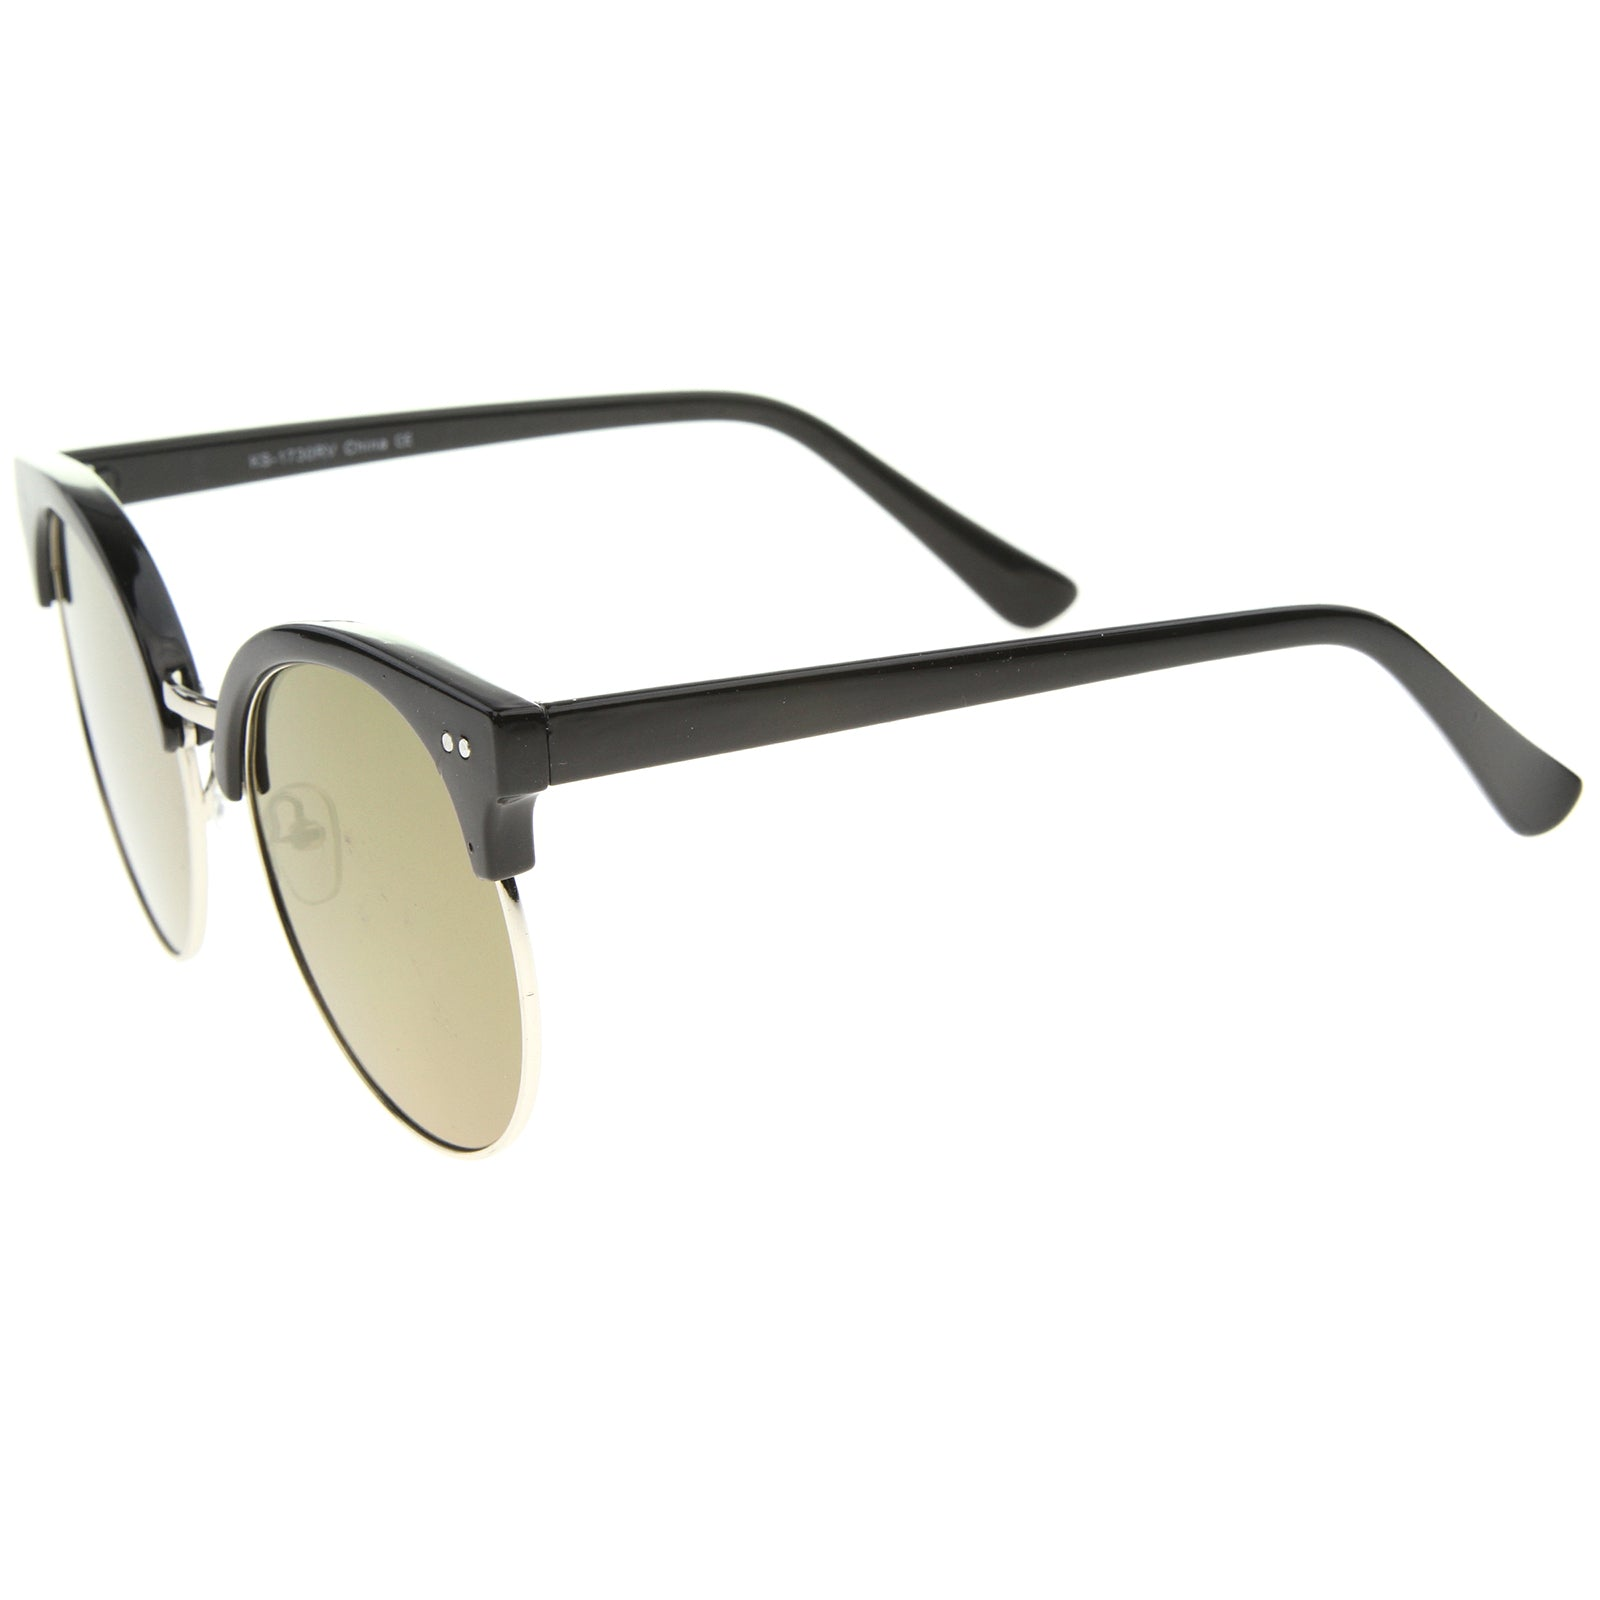 Womens Oversized Sunglasses With UV400 Protected Mirrored Lens - sunglass.la - 19